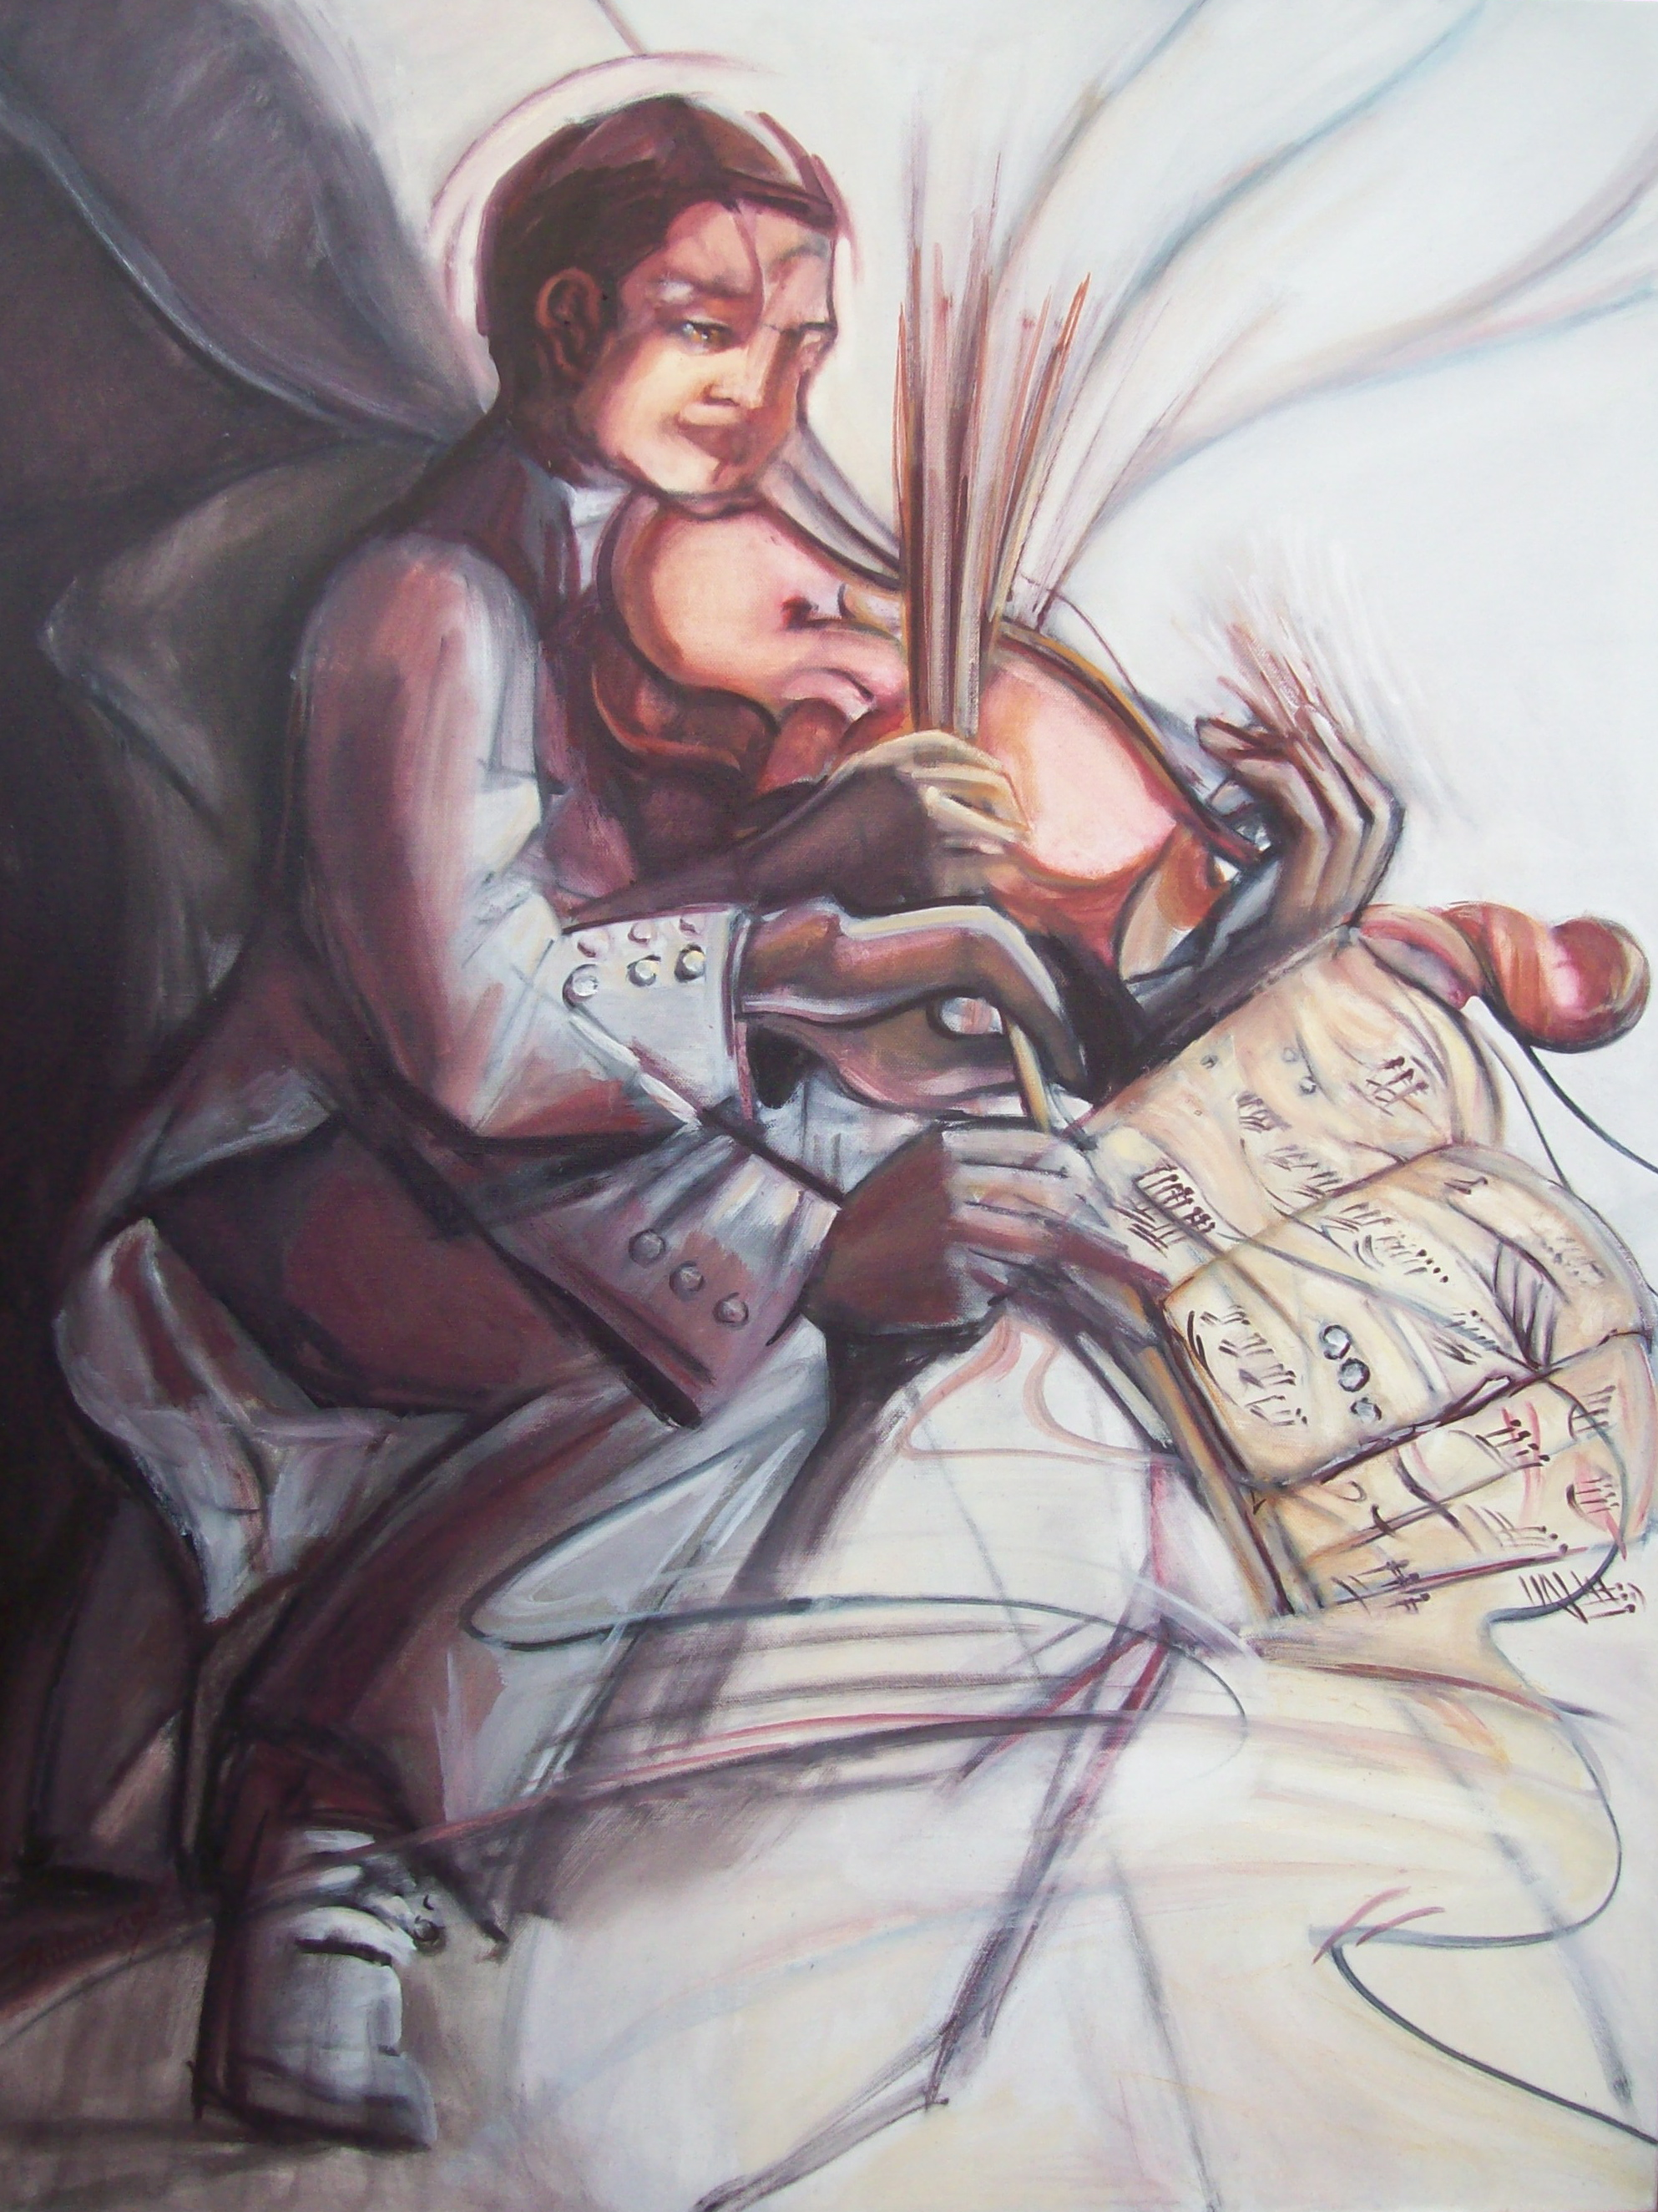 a painting of a violinist pulling the dots off the page and translating them into waves and distortions of the image